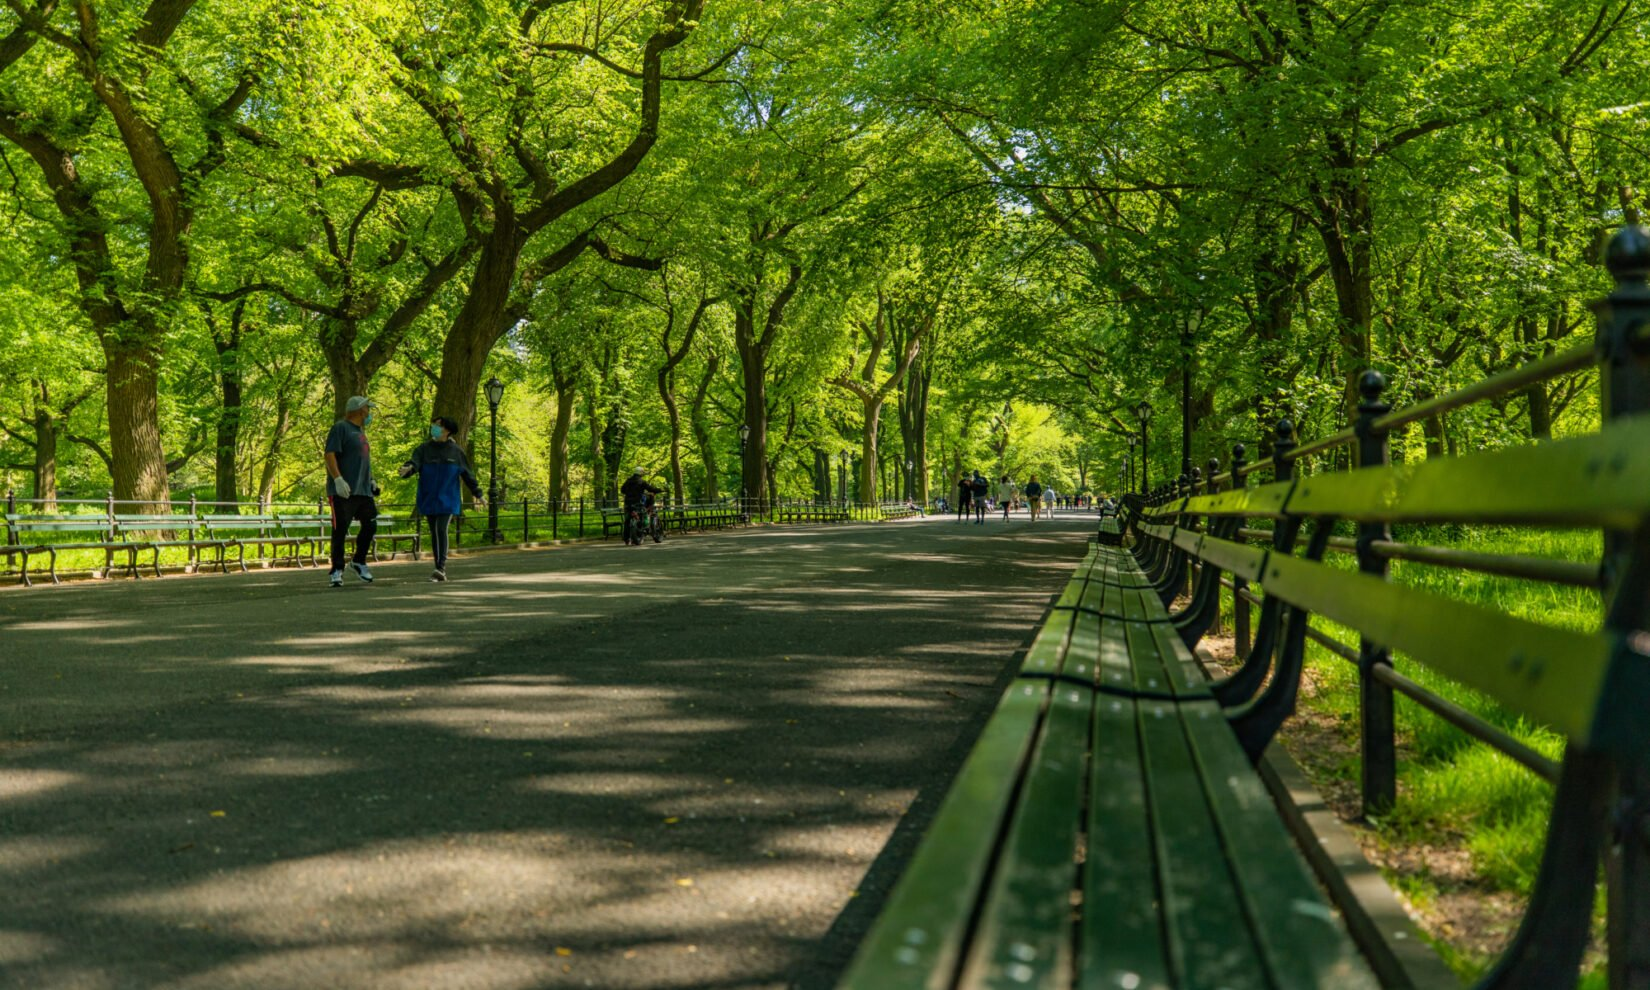 A view from a park bench, looking down the length of the Mall, with trees showing deep green summer leaves